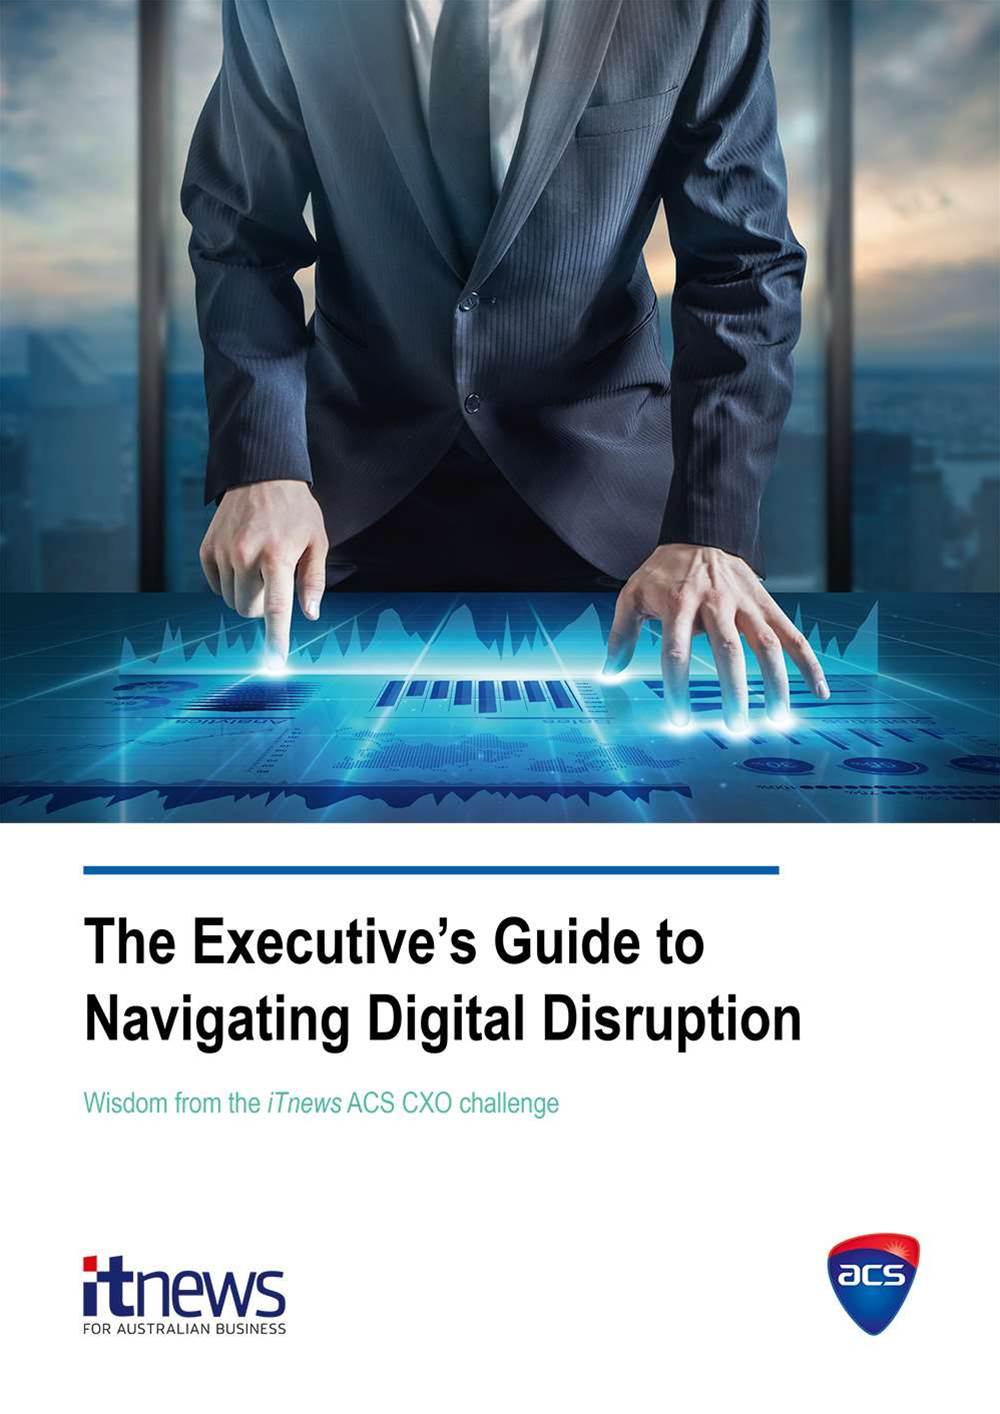 The Executive's Guide to Navigating Digital Disruption